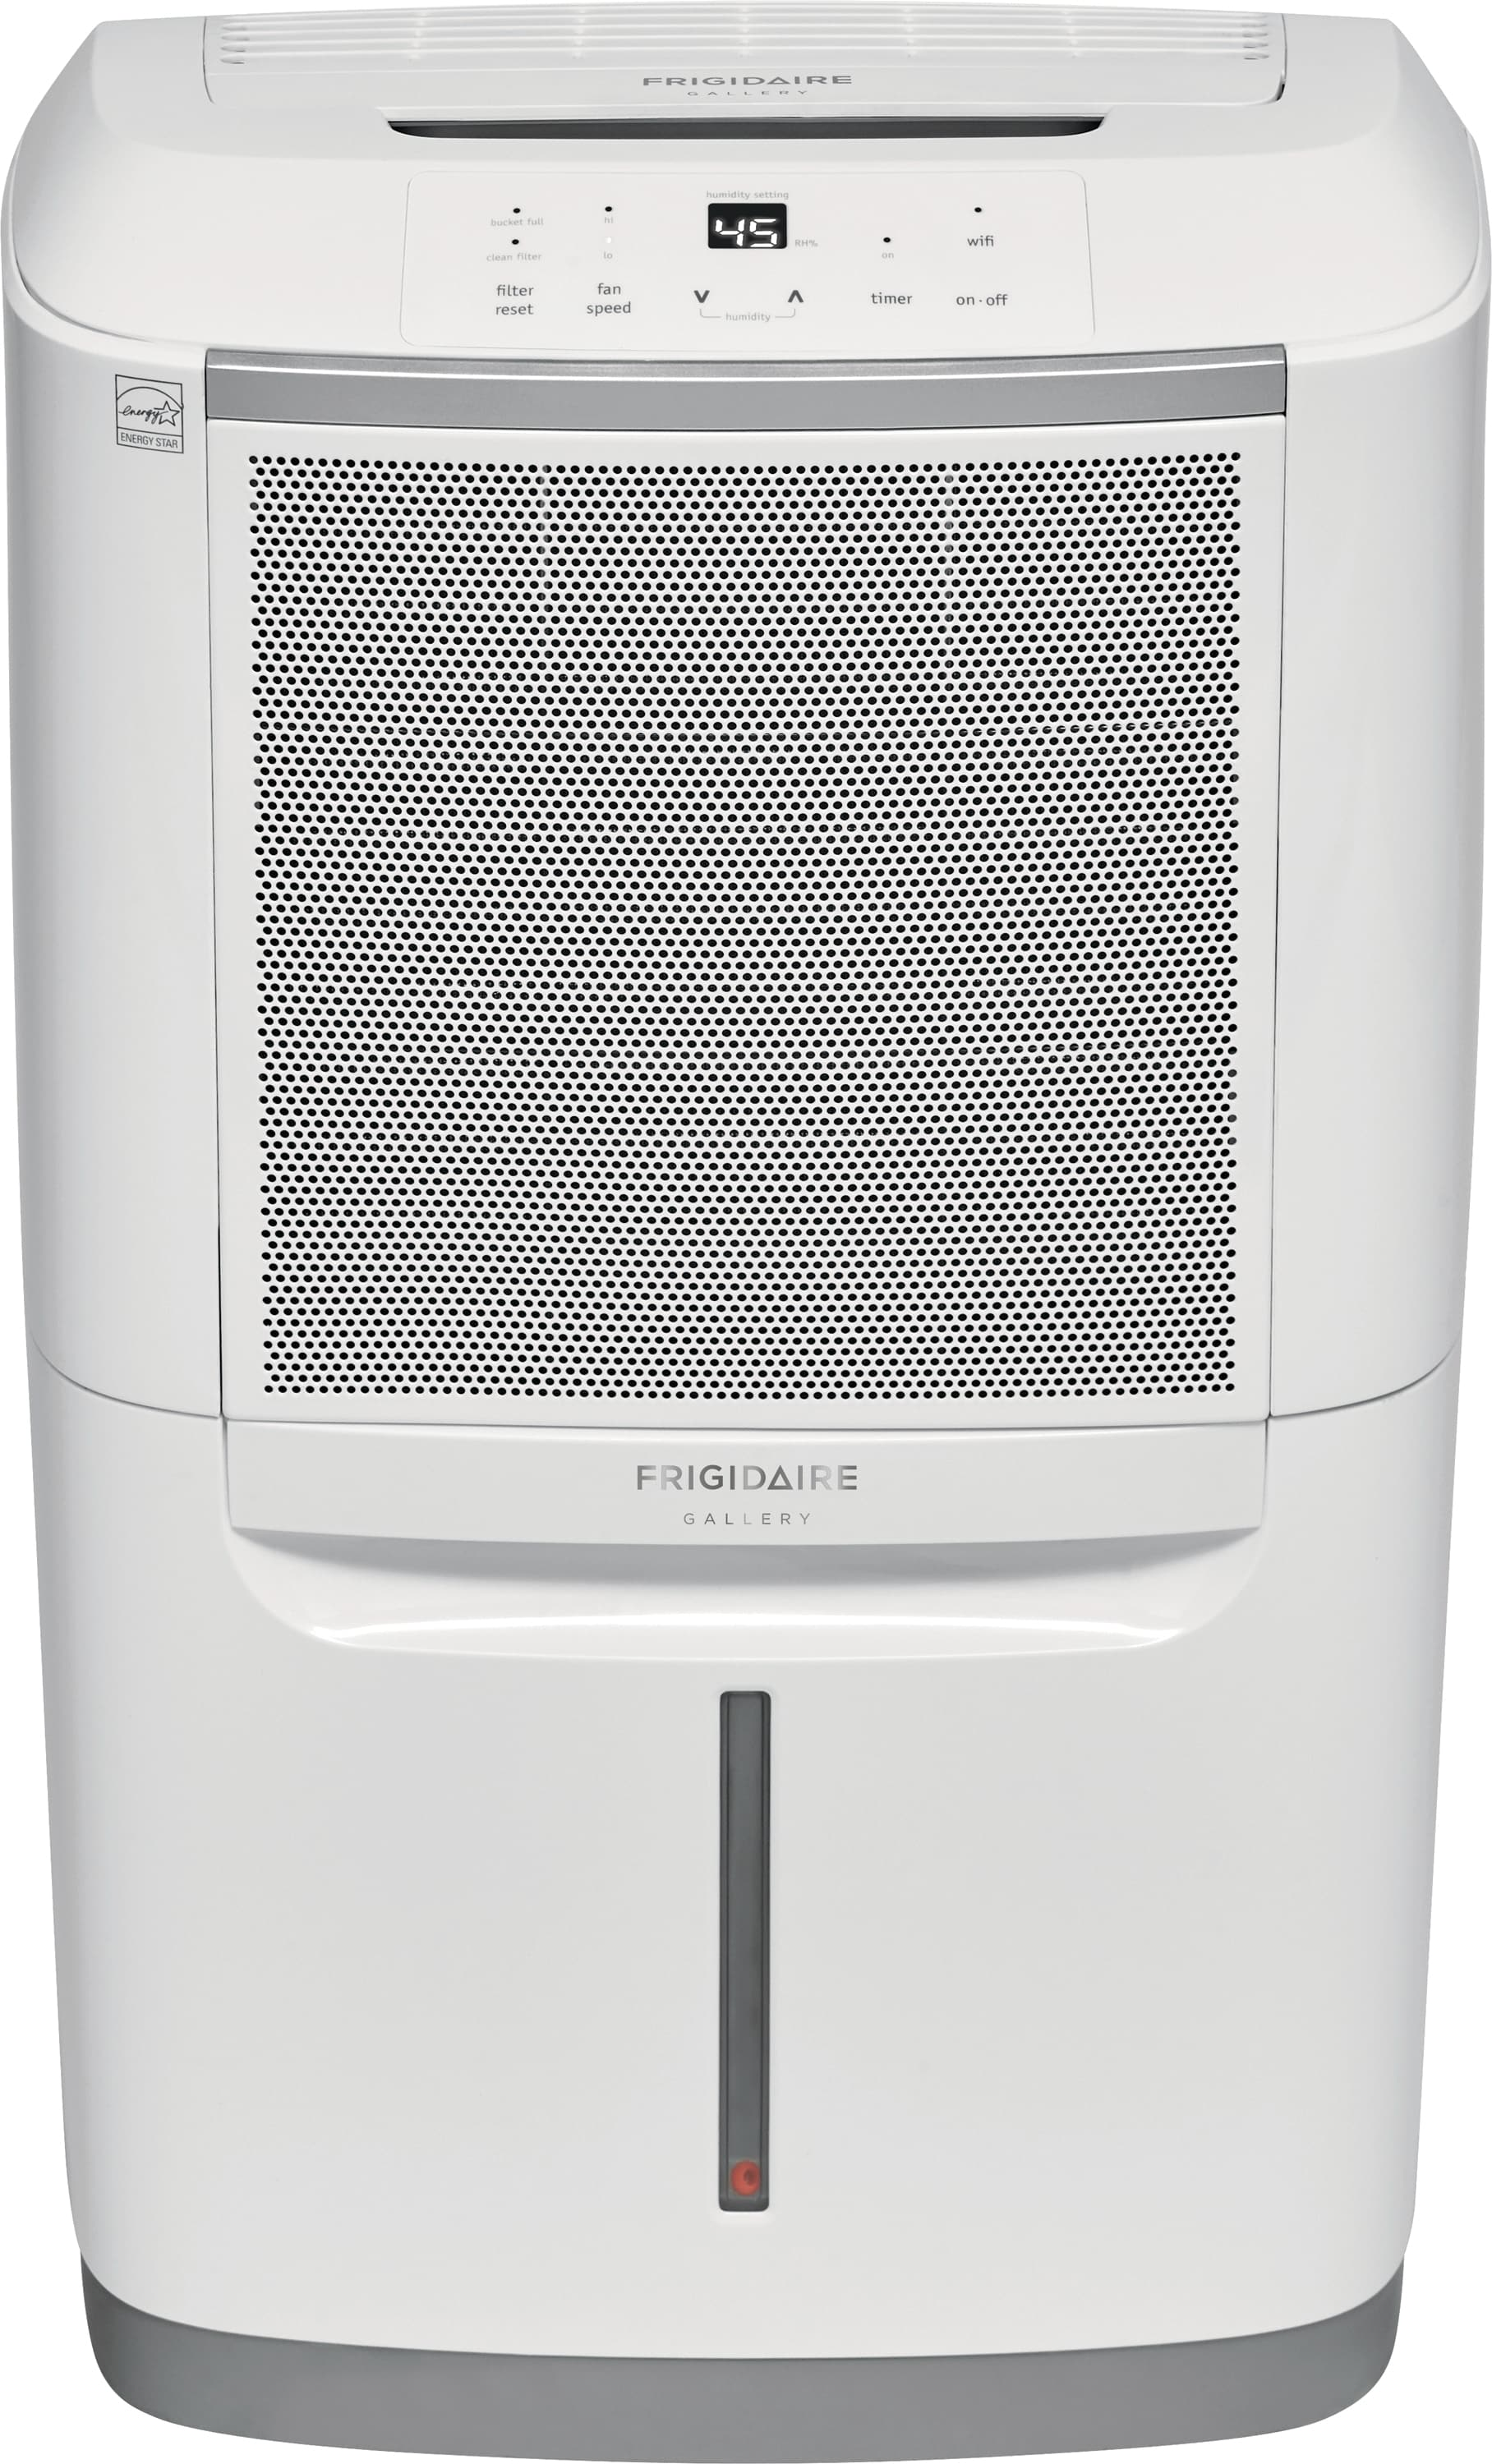 Frigidaire Frigidaire Gallery Large Room 70 Pint Capacity Dehumidifier with Wifi